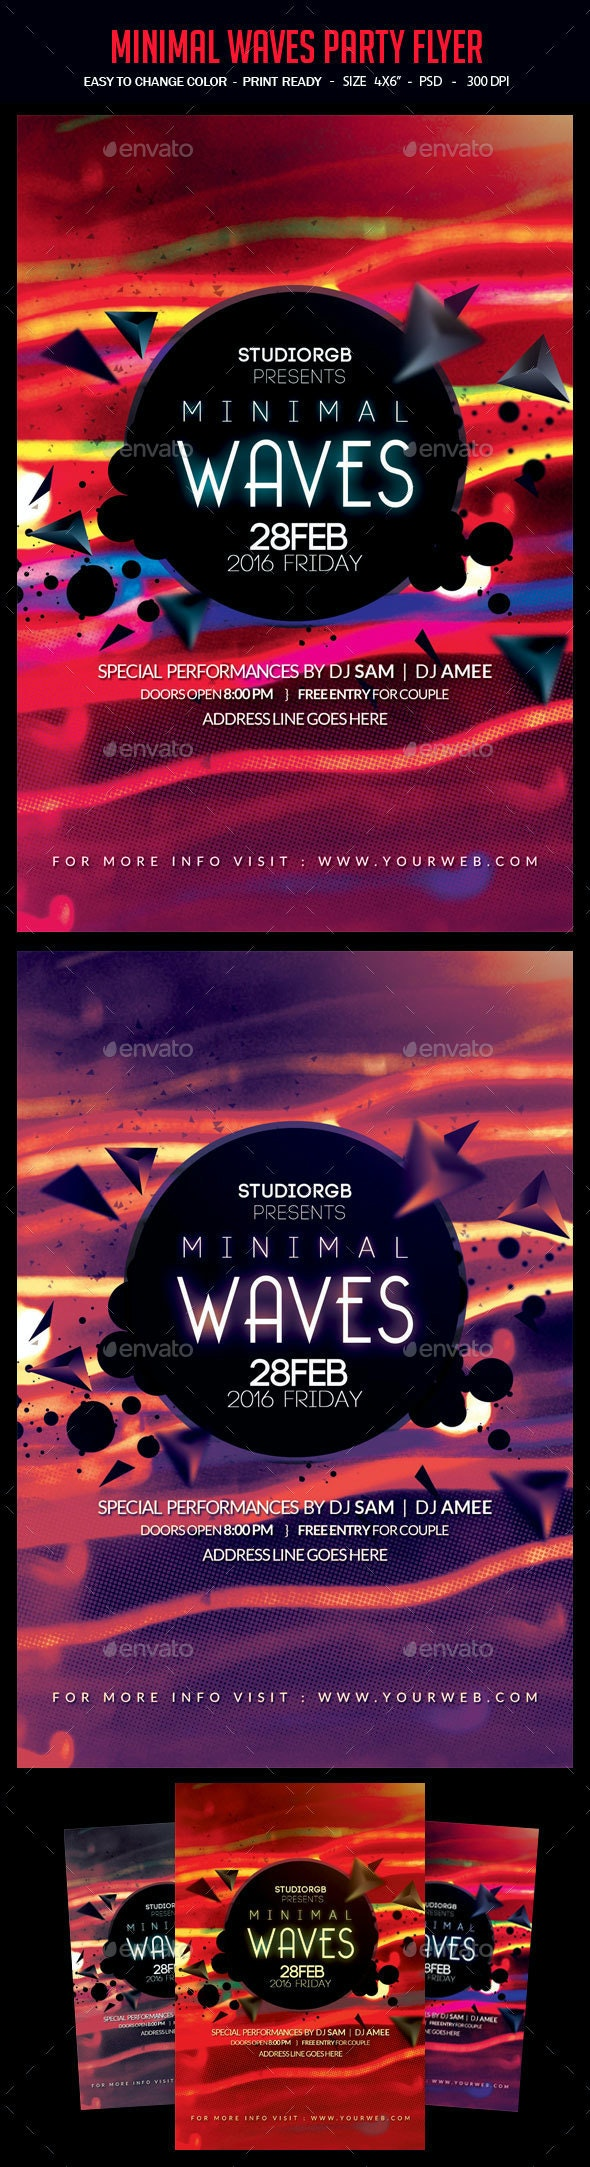 Minimal Waves Party Flyer - Clubs & Parties Events